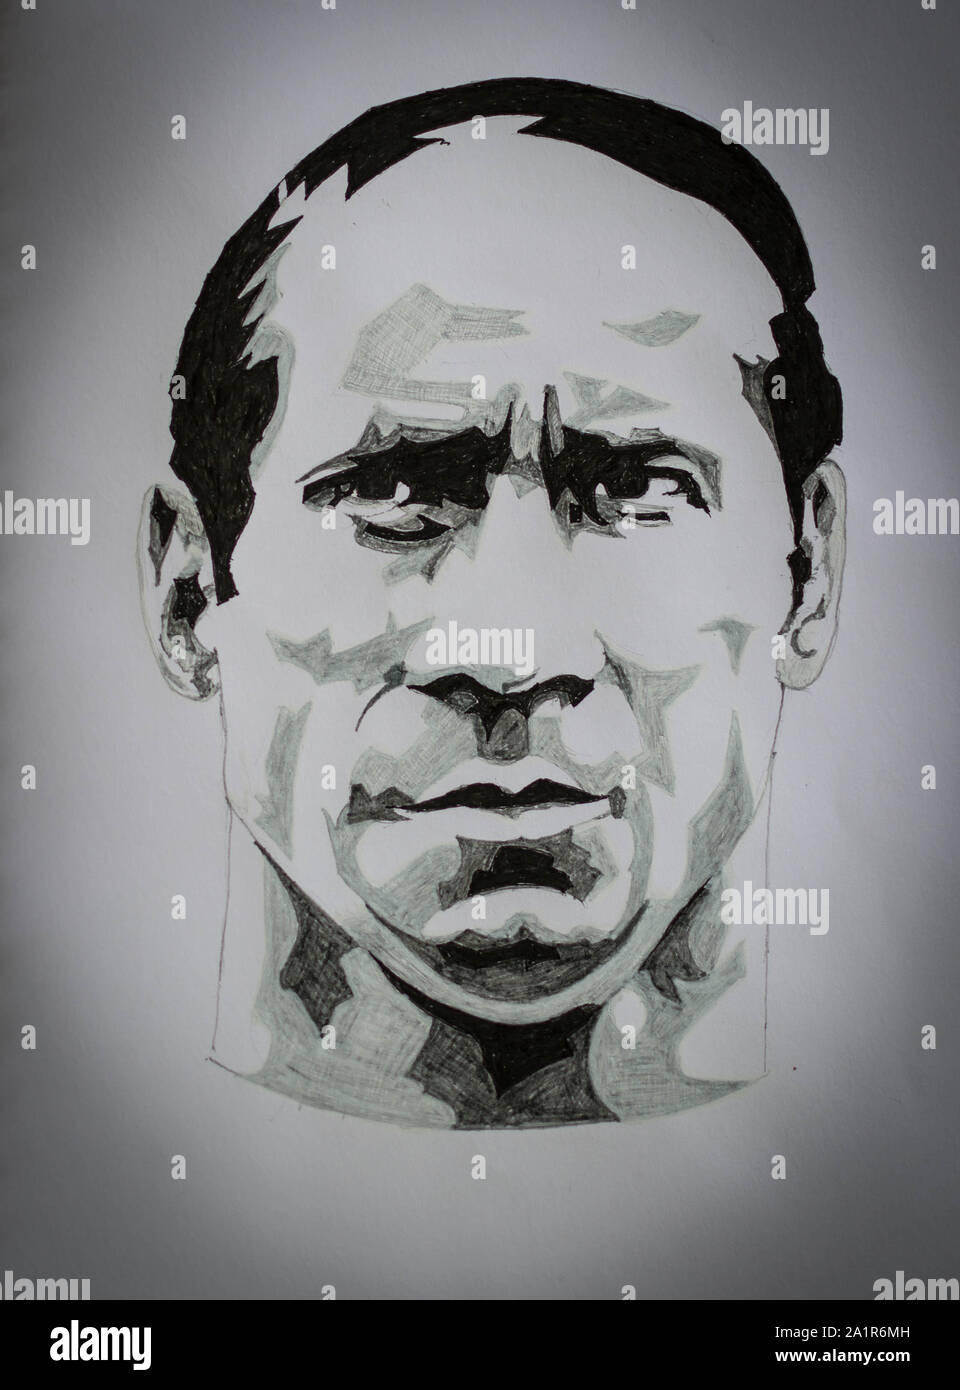 Pen And Ink Drawing Of Sir Bobby Charlton Manchester United And England Footballer Stock Photo Alamy